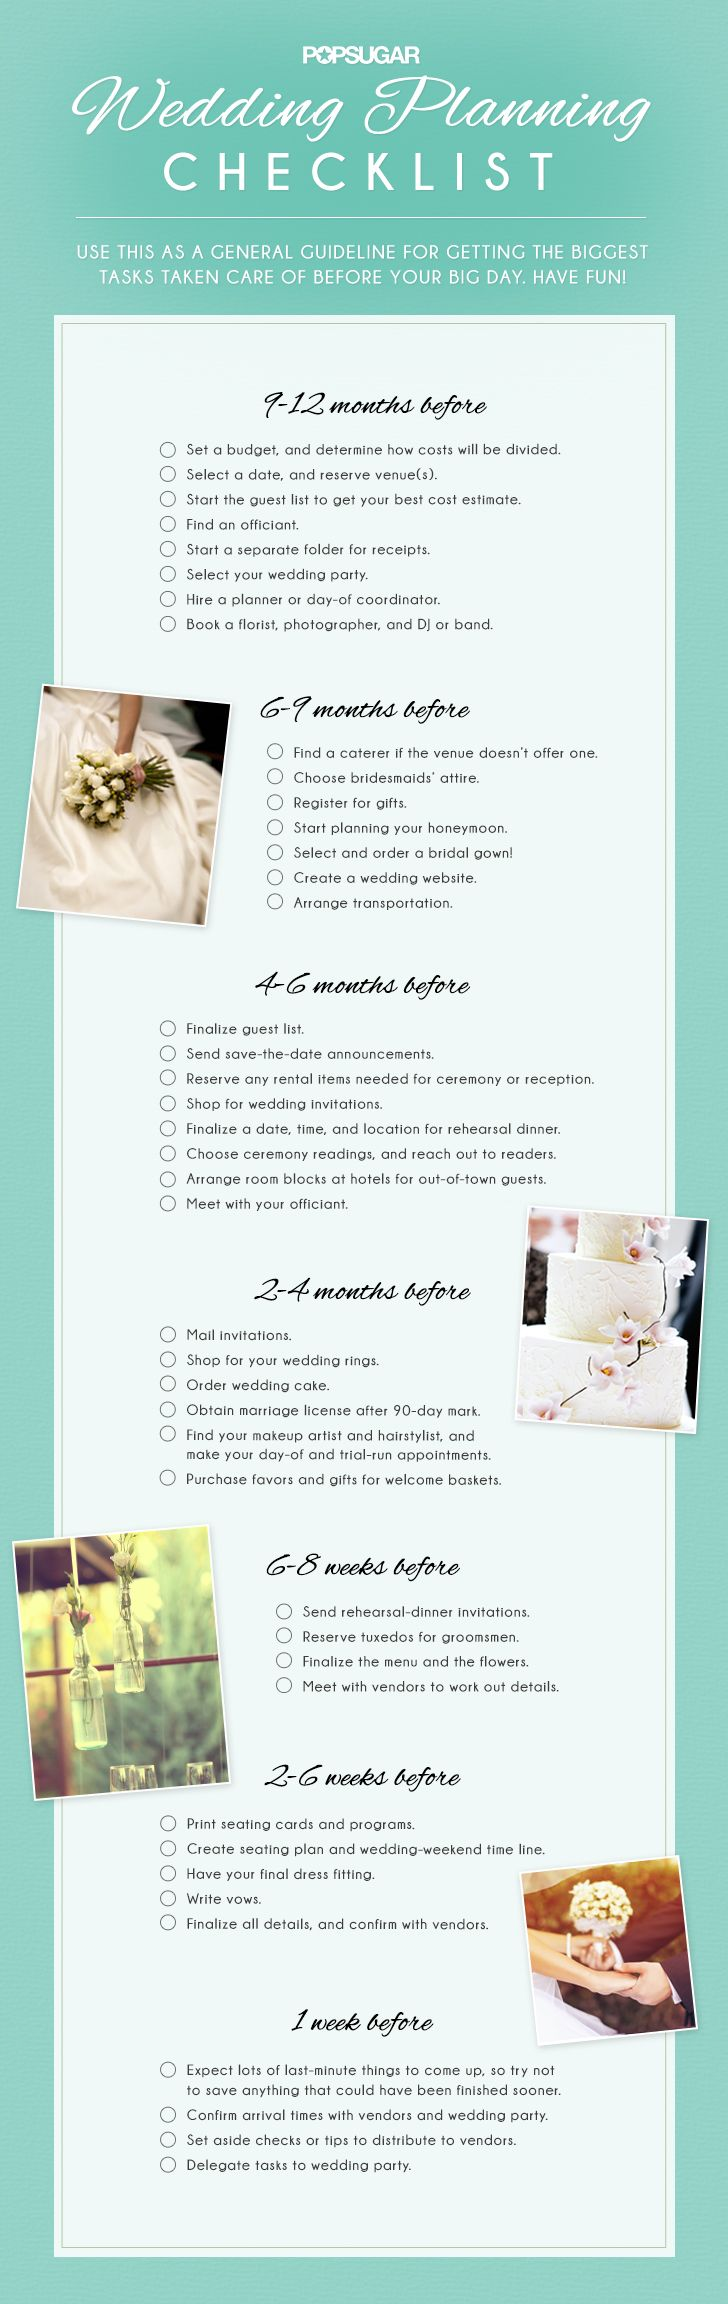 Download the Ultimate Wedding Planning Checklist! #wedding #planning